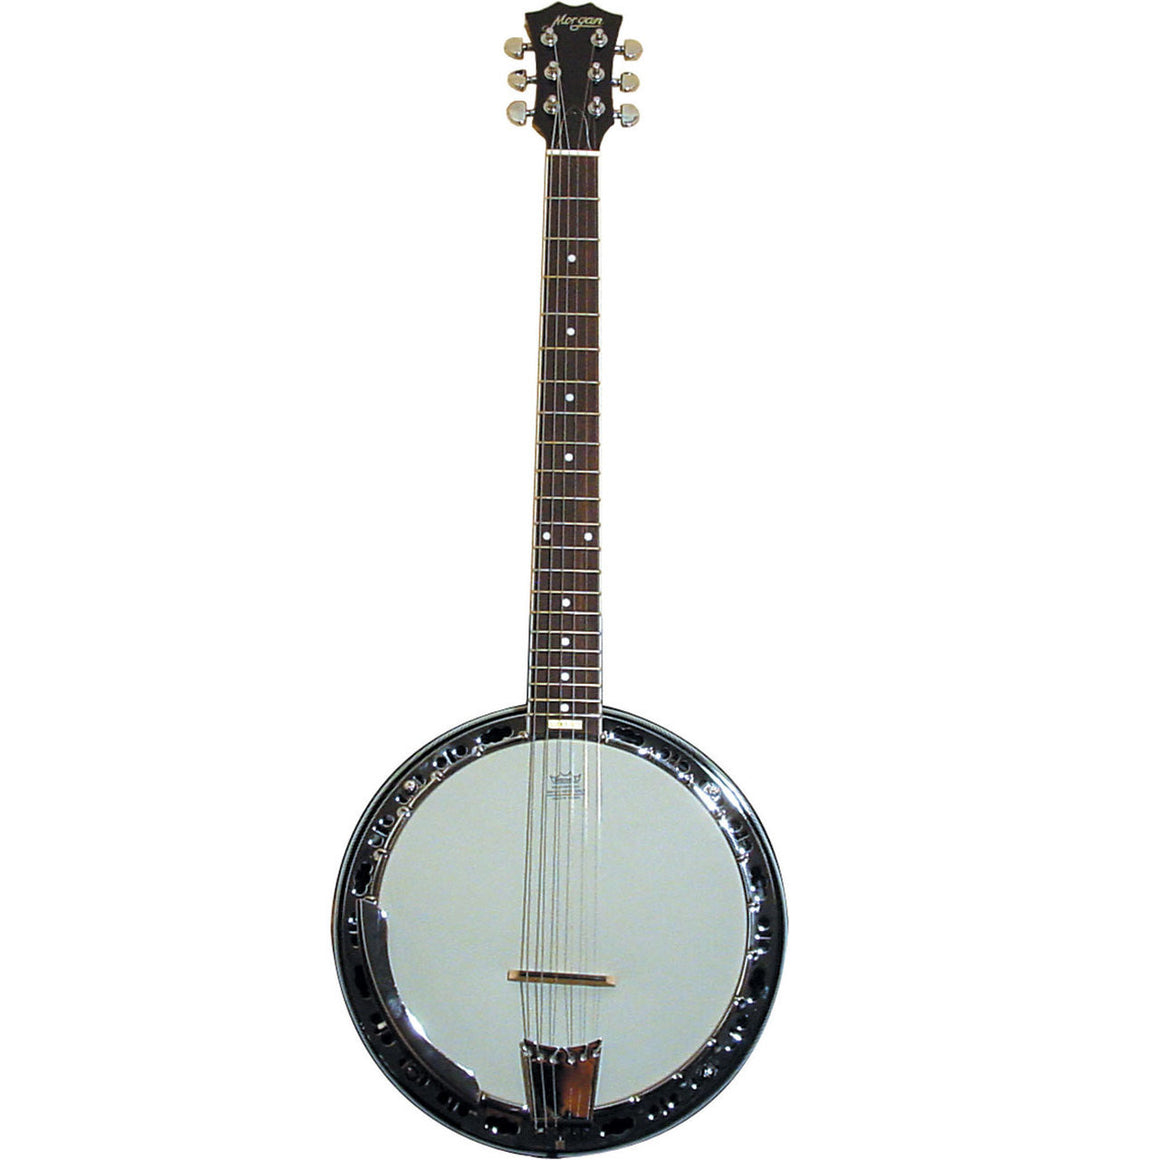 Morgan BJ-36 Banjogitar / 6-strengs banjo, inkl. kasse